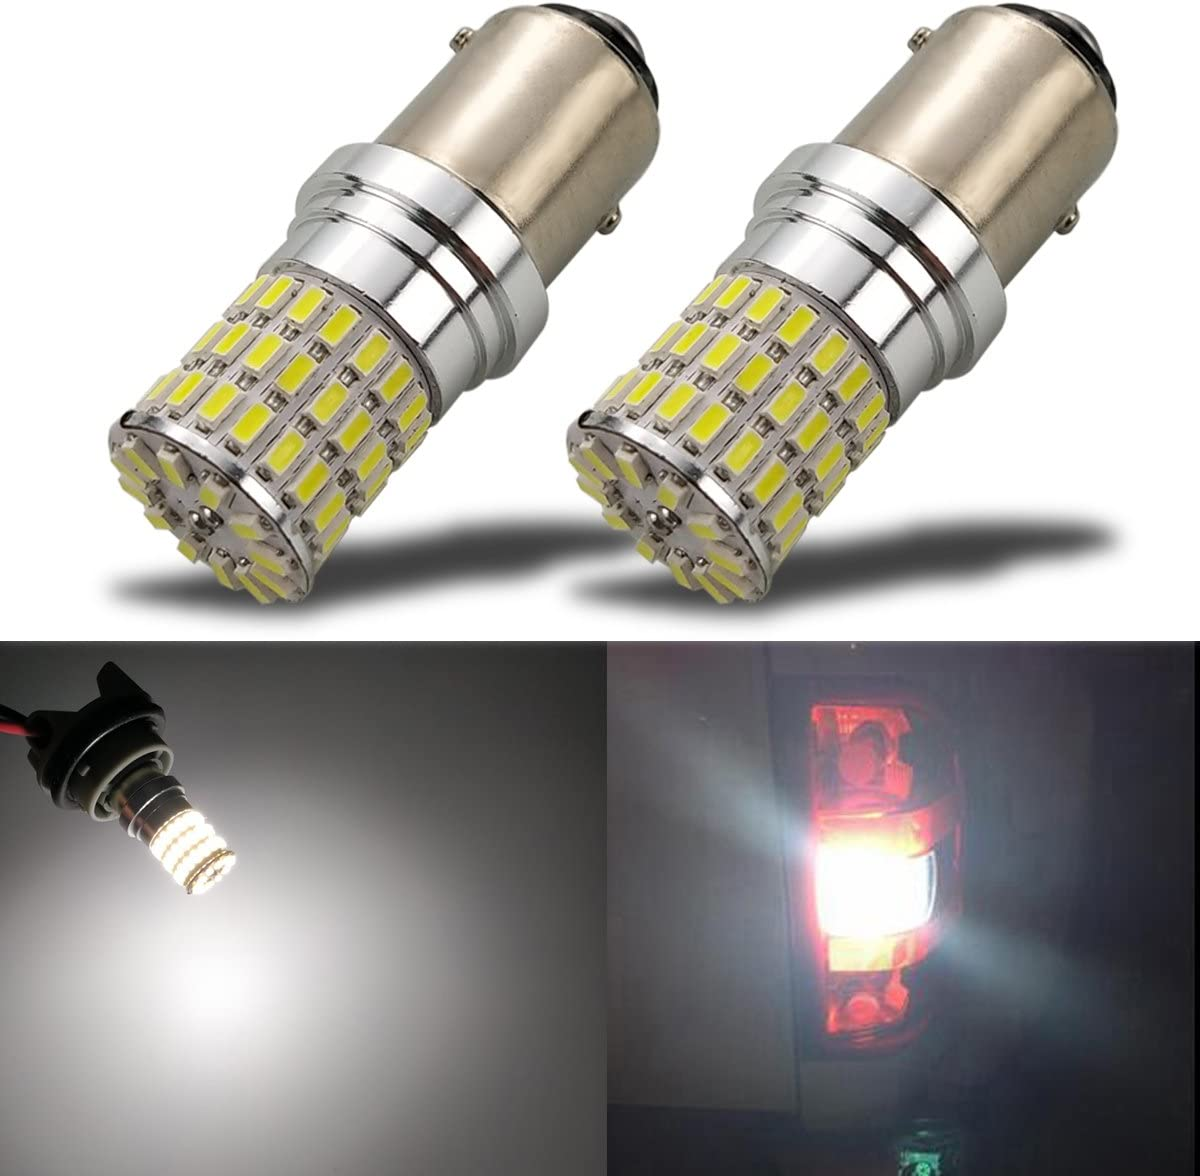 iBrightstar Newest 9-30V Super Bright Low Power 1157 2057 2357 7528 BAY15D LED Bulbs with Projector replacement for Turn Signal Lights,Amber Yellow